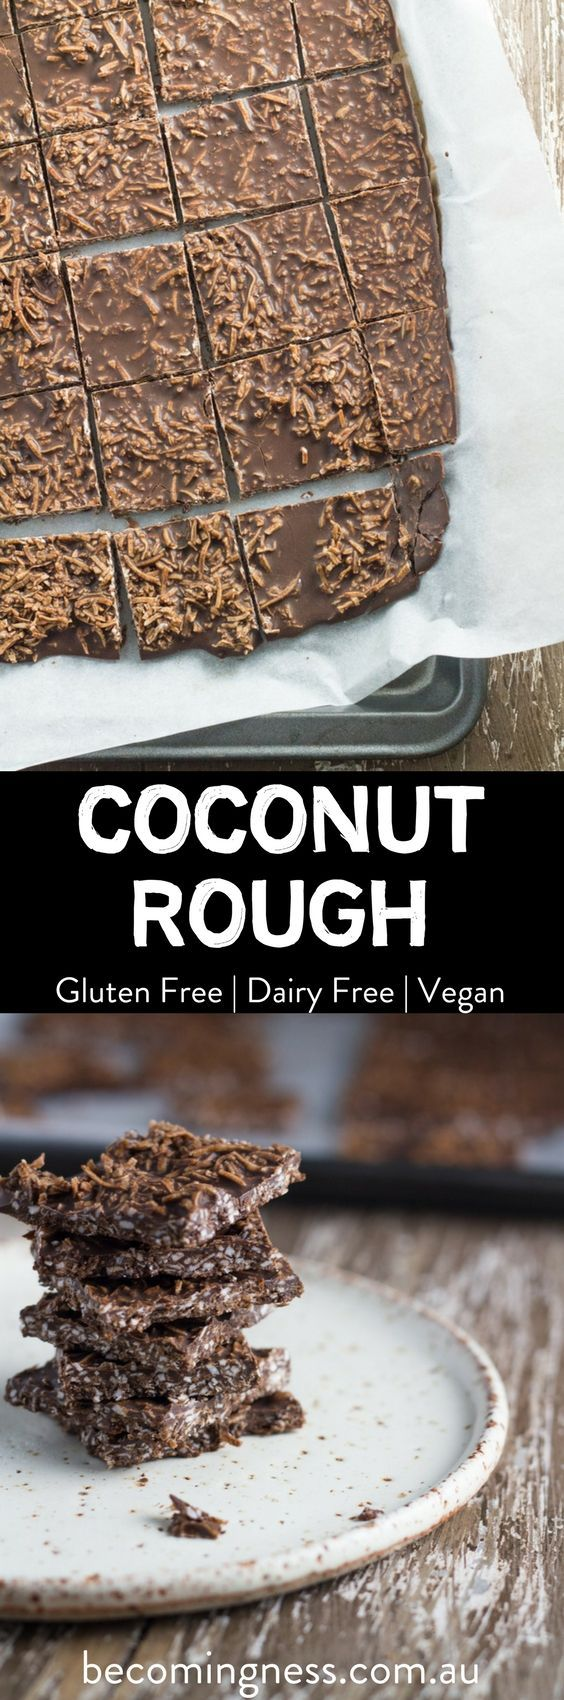 Coconut Rough is really easy to whip up and is made with only four ingredients. Best of all, both my kids LOVE it!